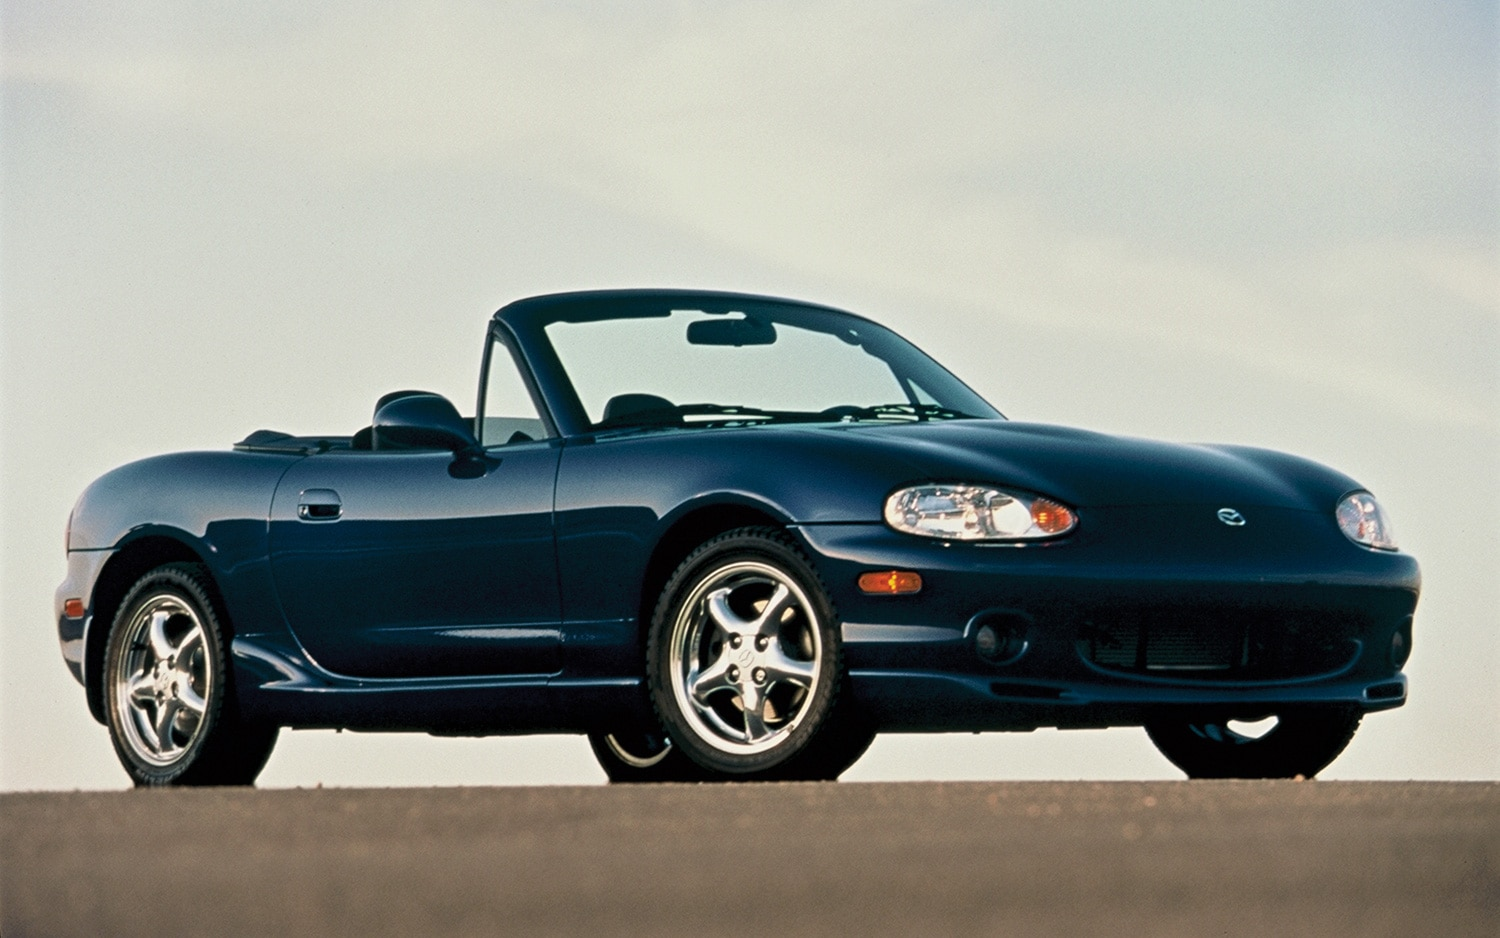 Mazda MX 5 Miata Second Generation Front View